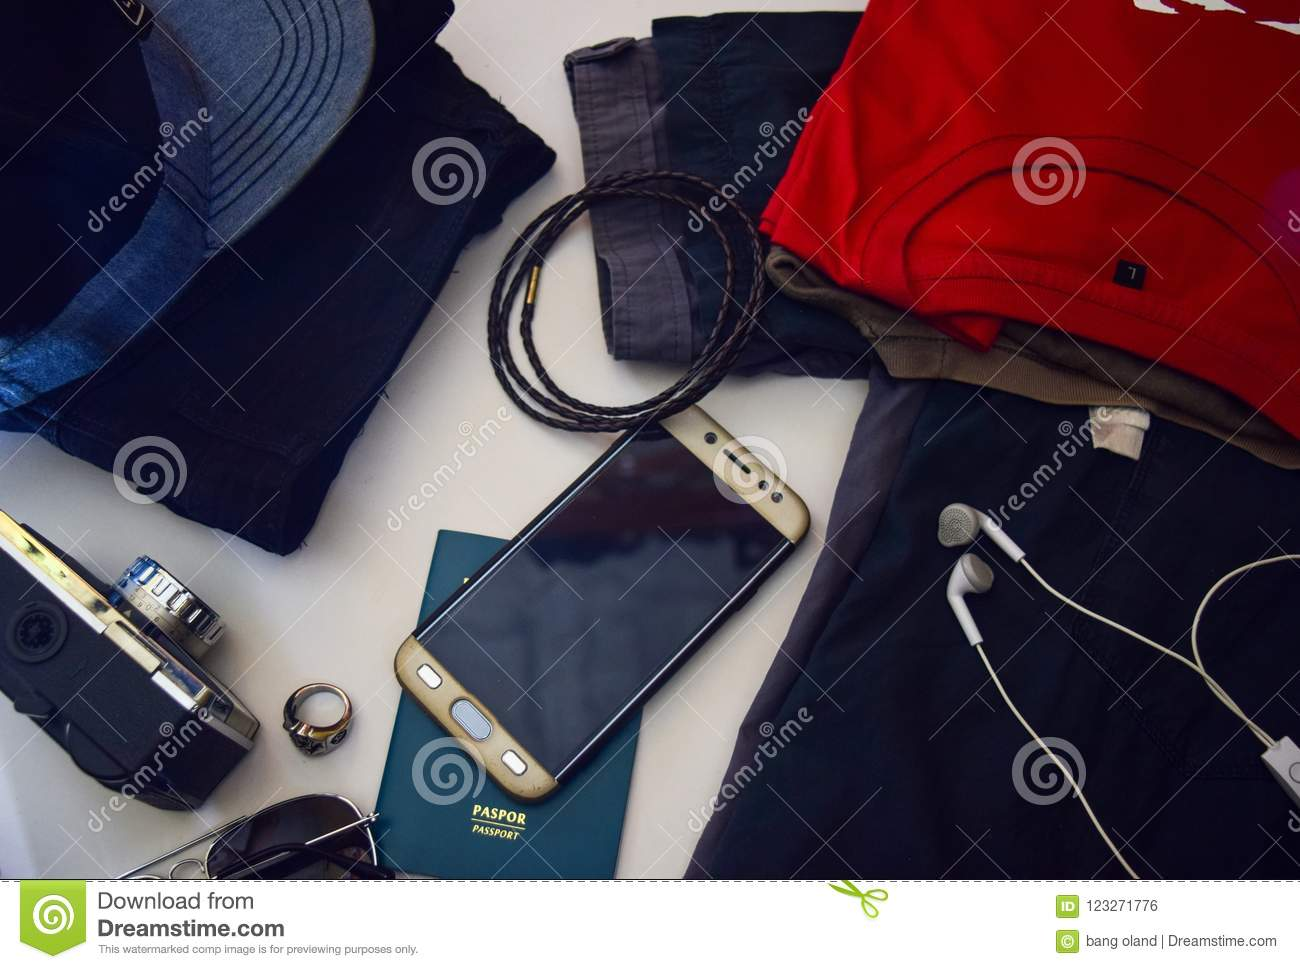 Passport, sunglasses, old camera, jeans, shirt, bracelet and sunglasses are lying on white background. Preparing for traveling